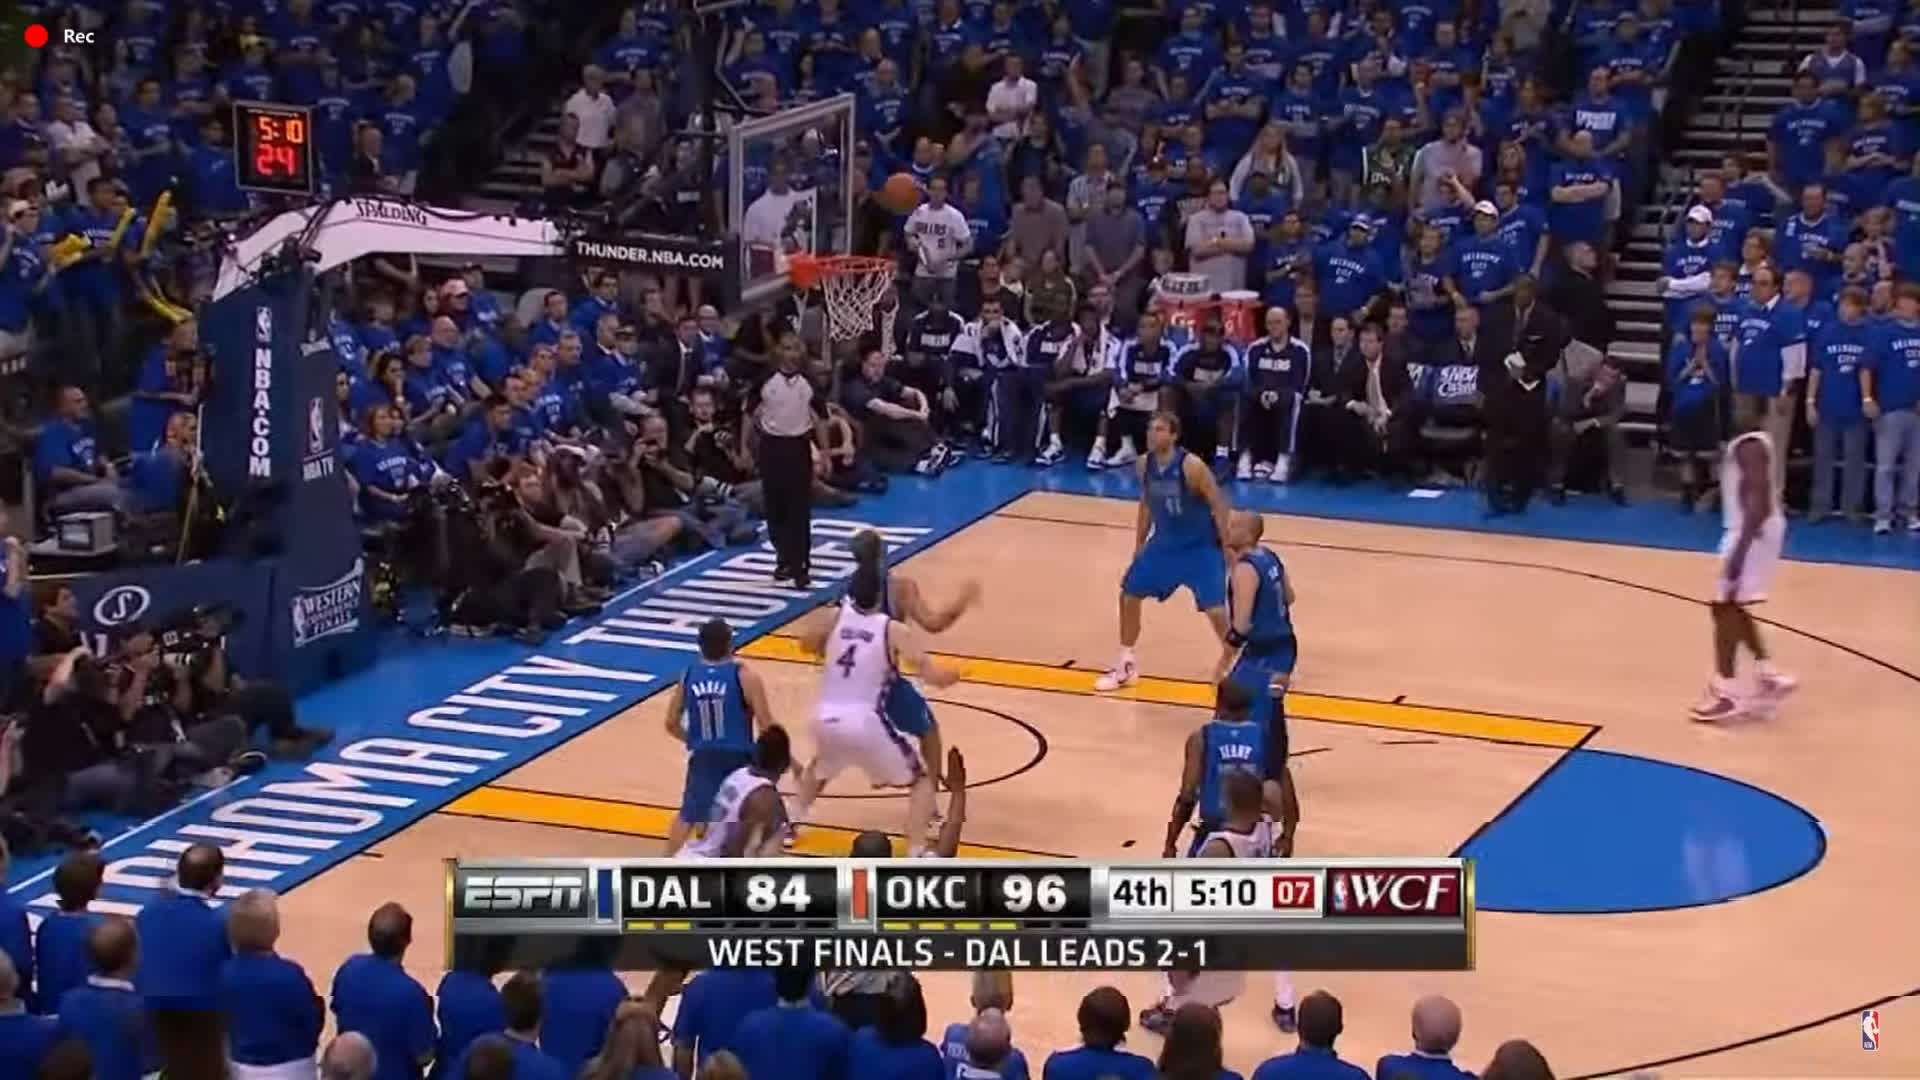 Kevin Durant hits the three to give the Thunder a 15 point lead